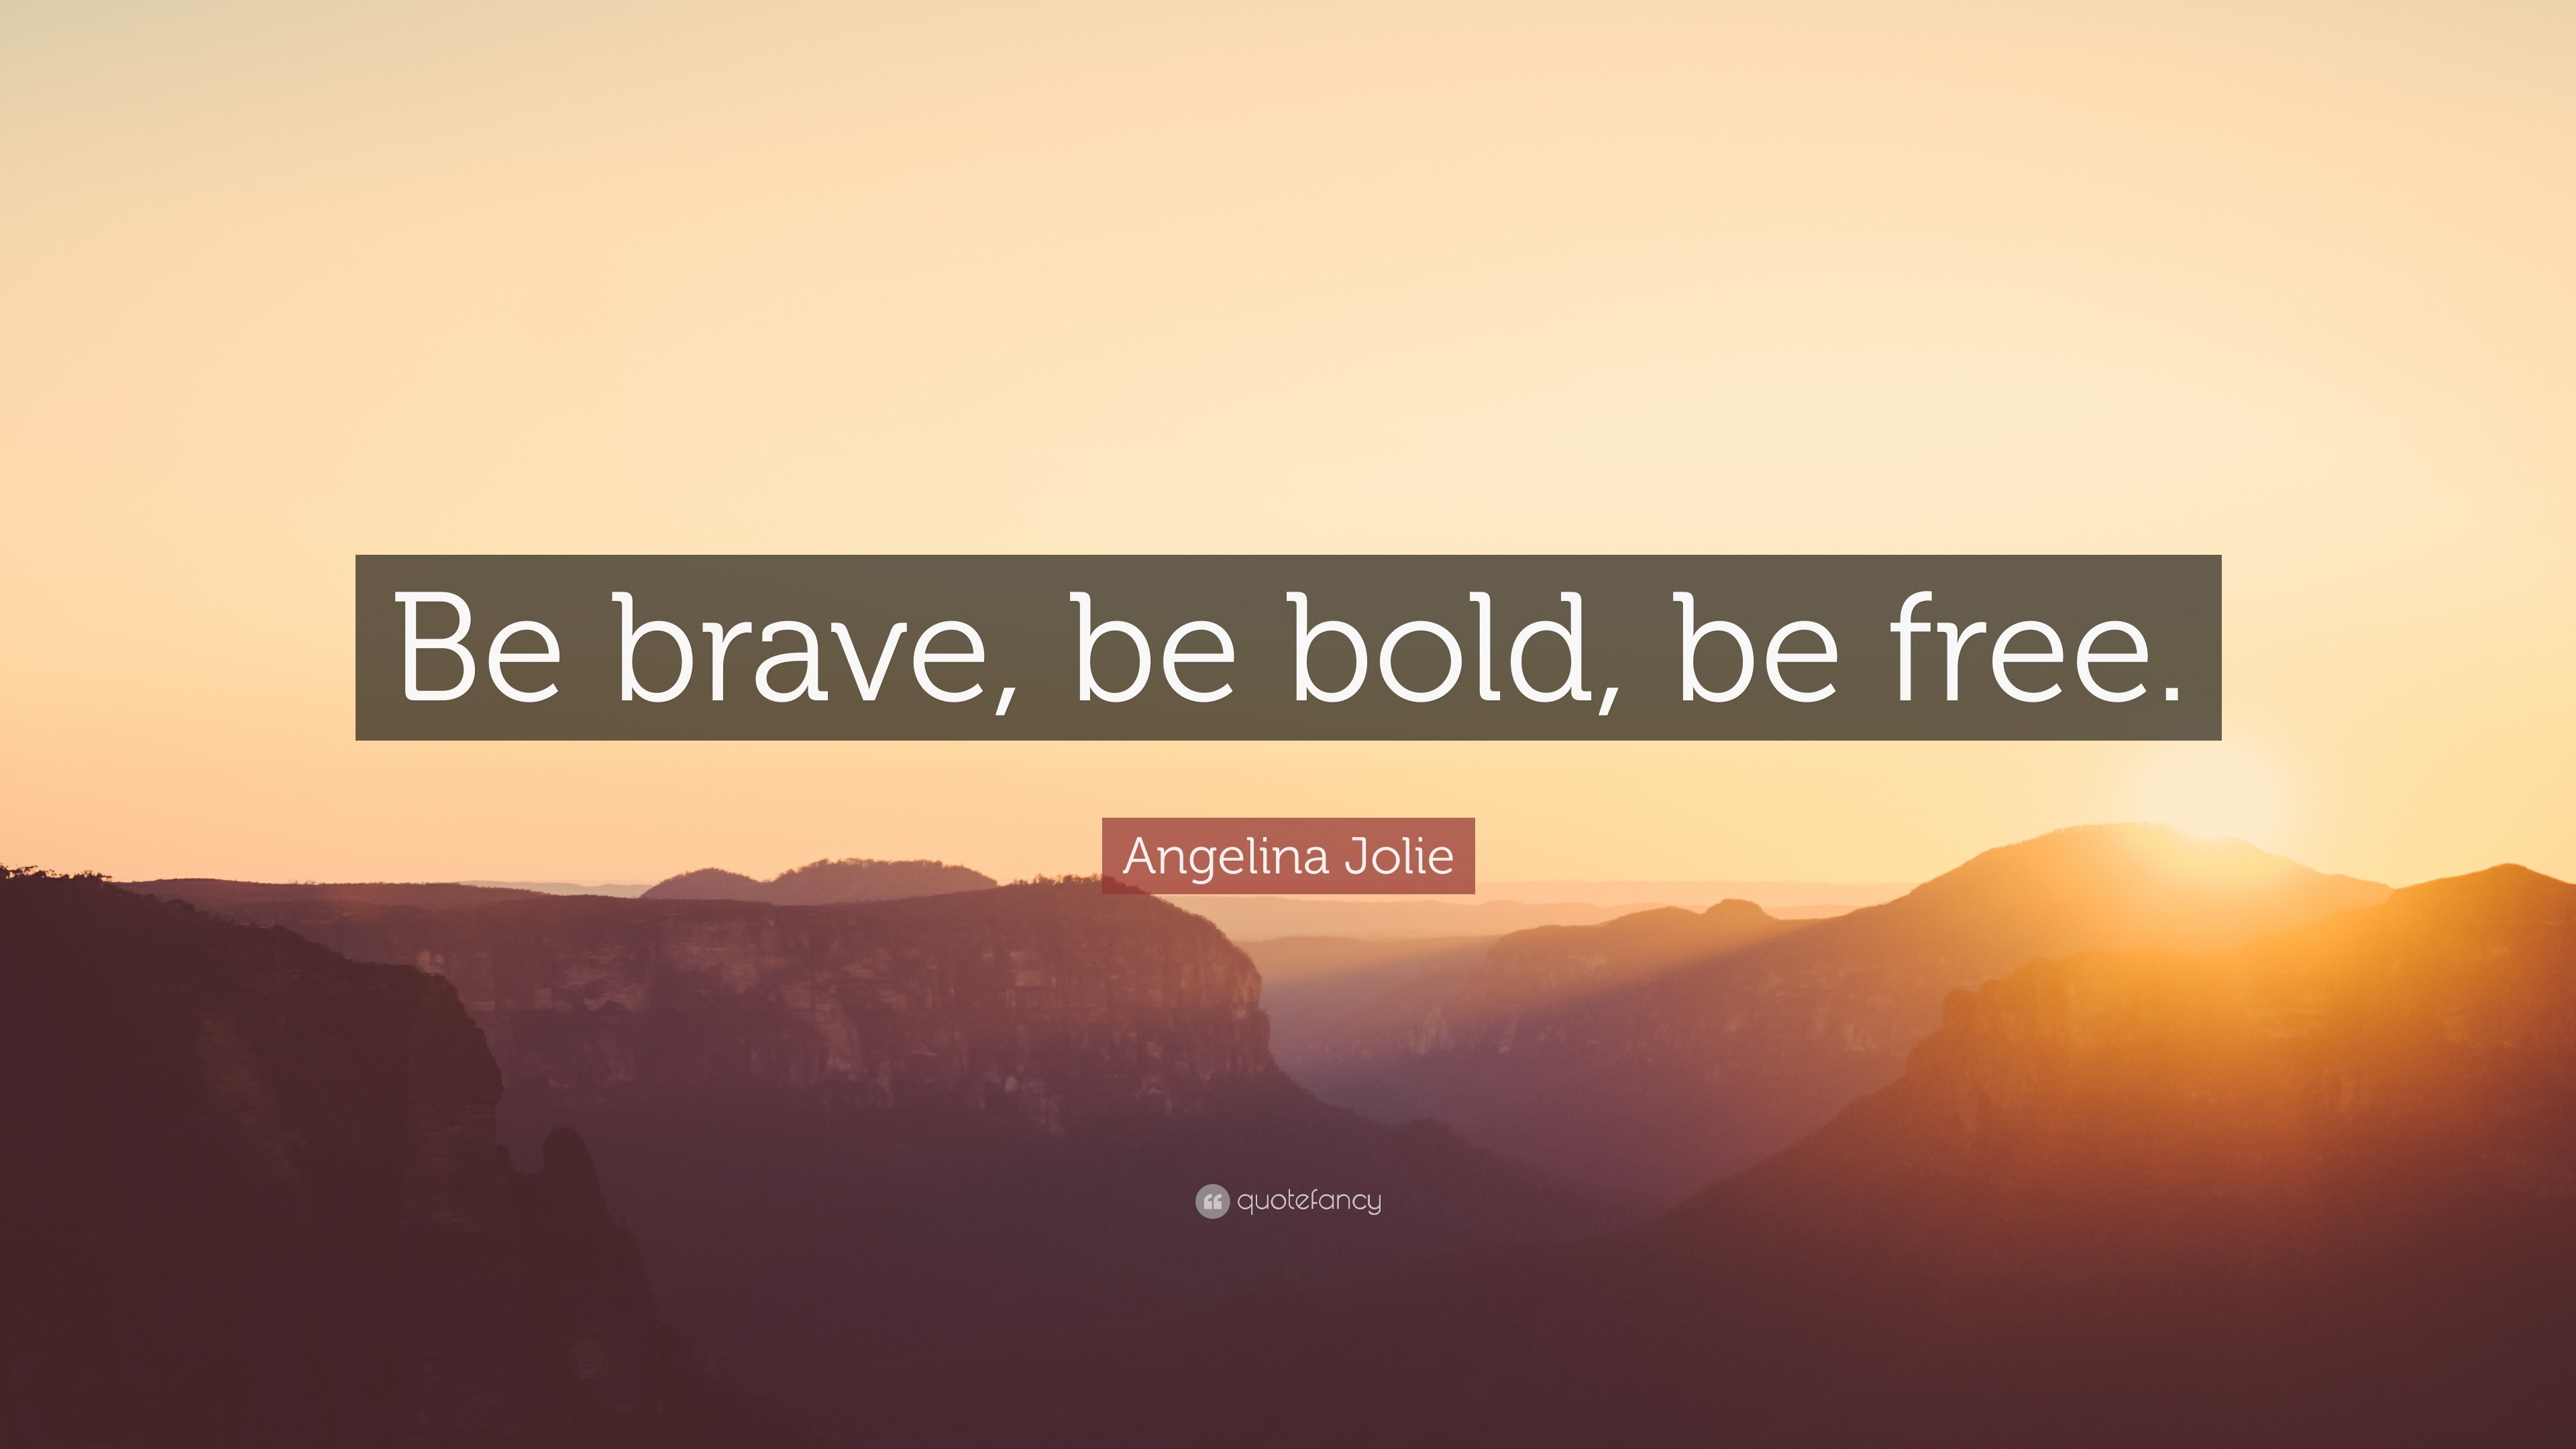 angelina jolie quote be brave be bold be free